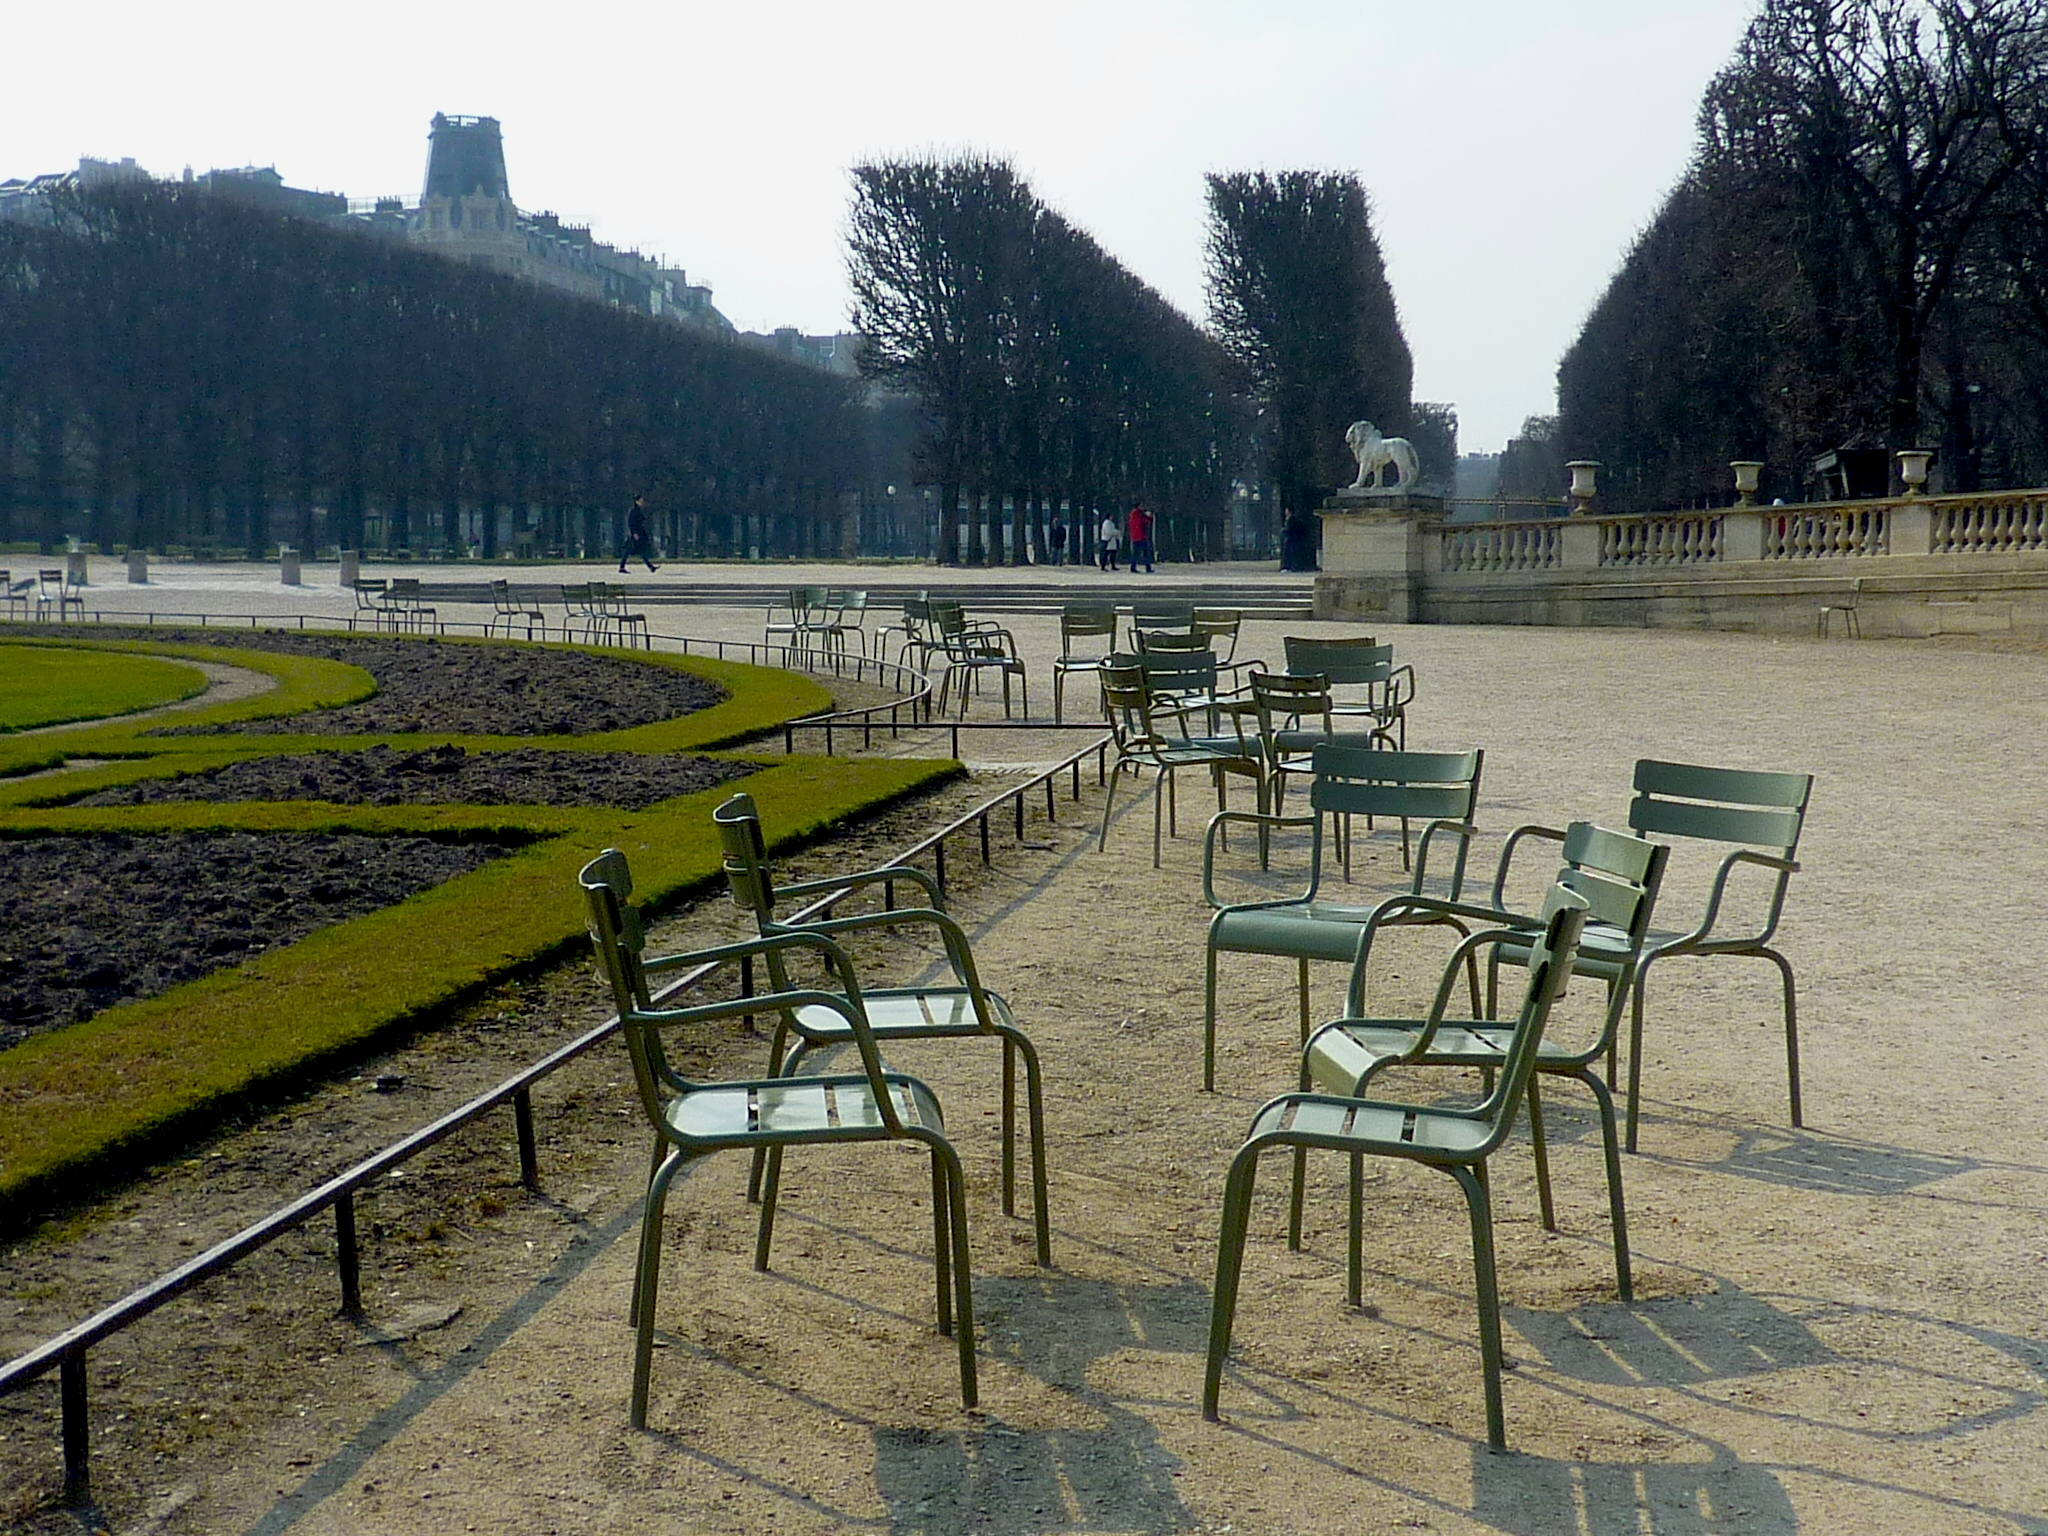 amoureux des bancs publics jardins de france. Black Bedroom Furniture Sets. Home Design Ideas